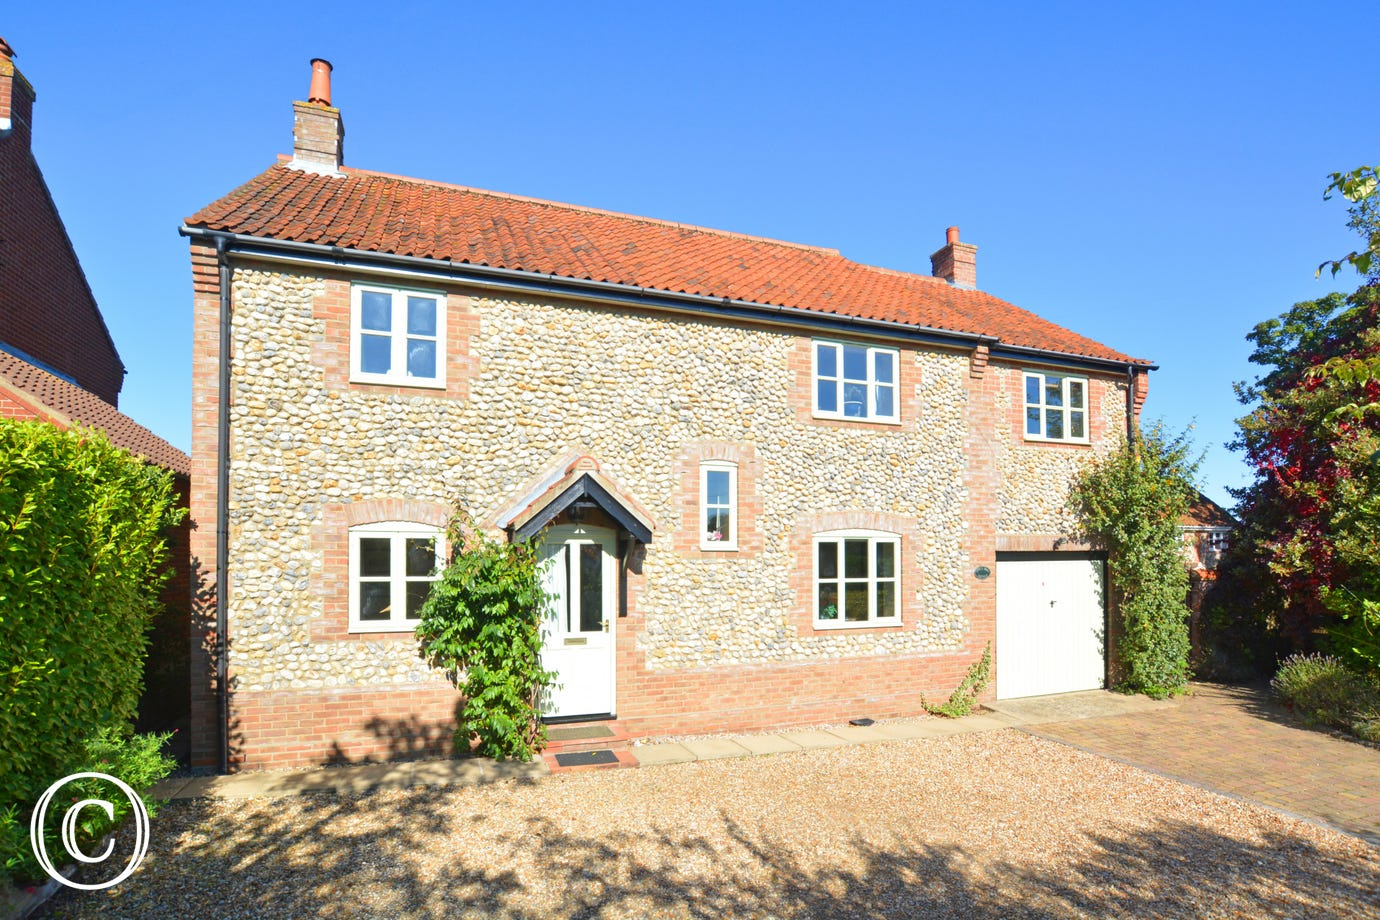 Appletree Cottage is a spacious detached property built in traditional Norfolk brick and flint. It is a delightful, attractively presented cottage, which is well equipped and ideal for a family holiday